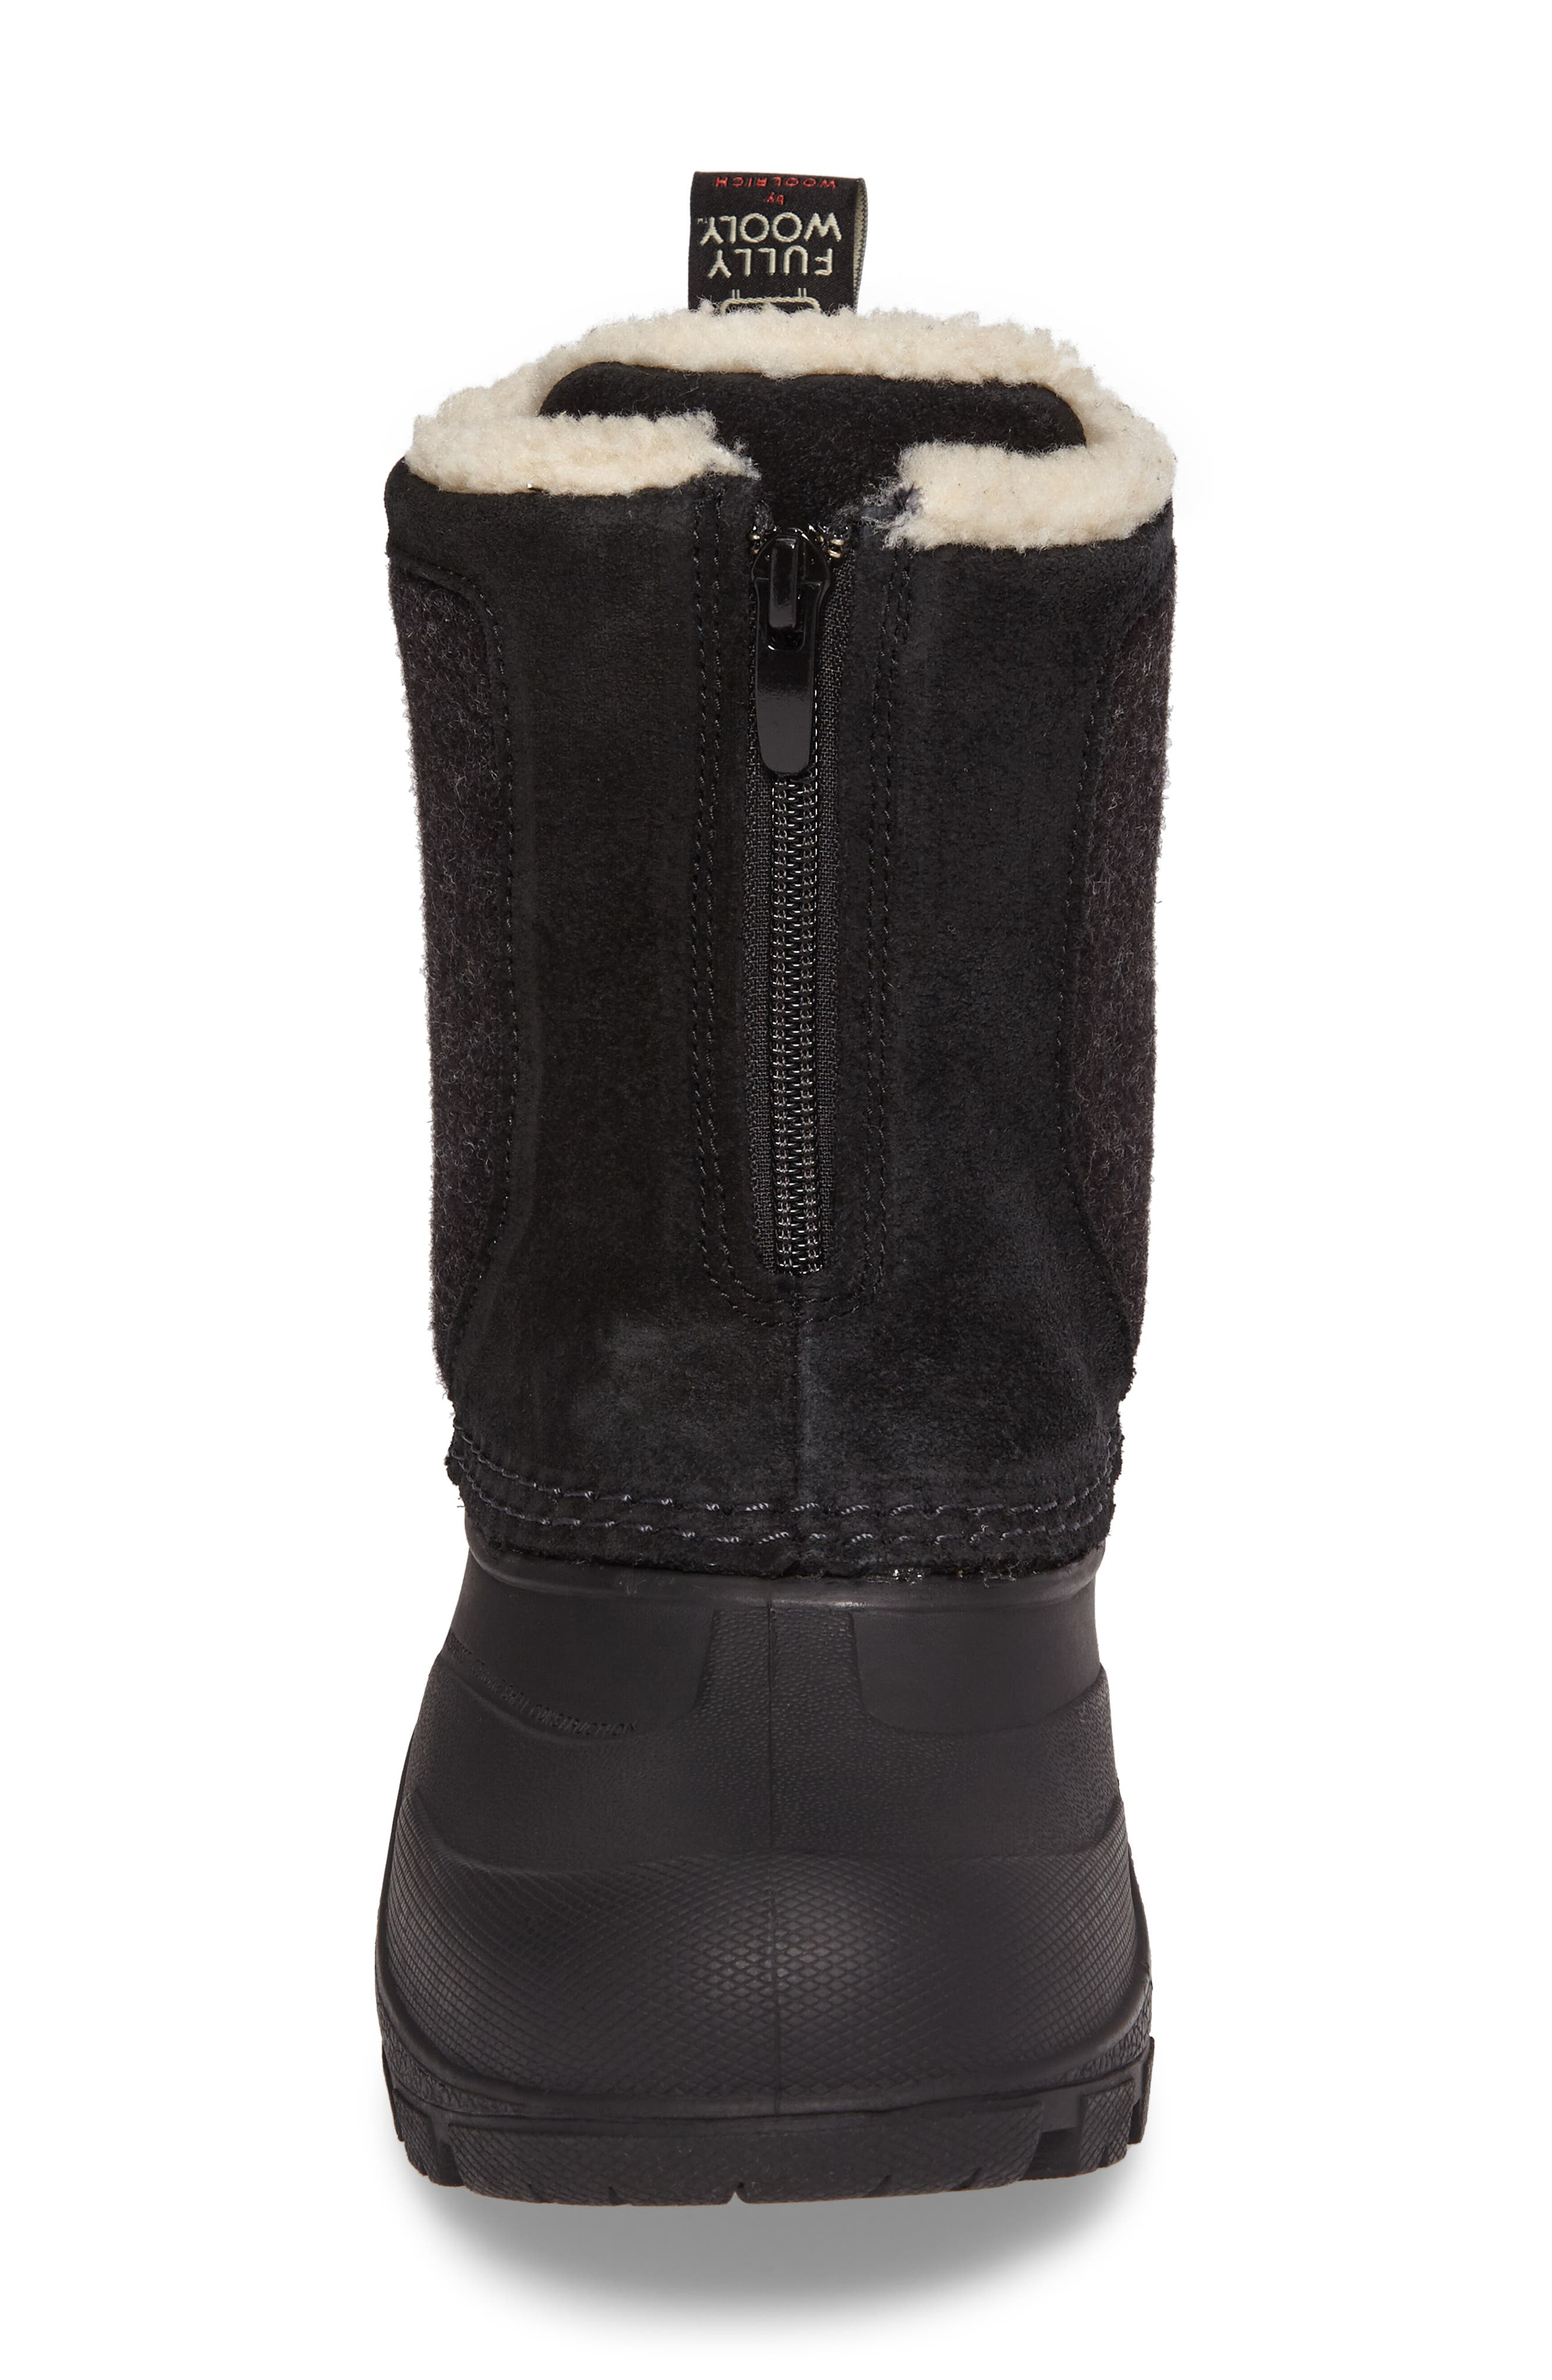 Fully Wooly Icecat Waterproof Insulated Winter Boot,                             Alternate thumbnail 4, color,                             001